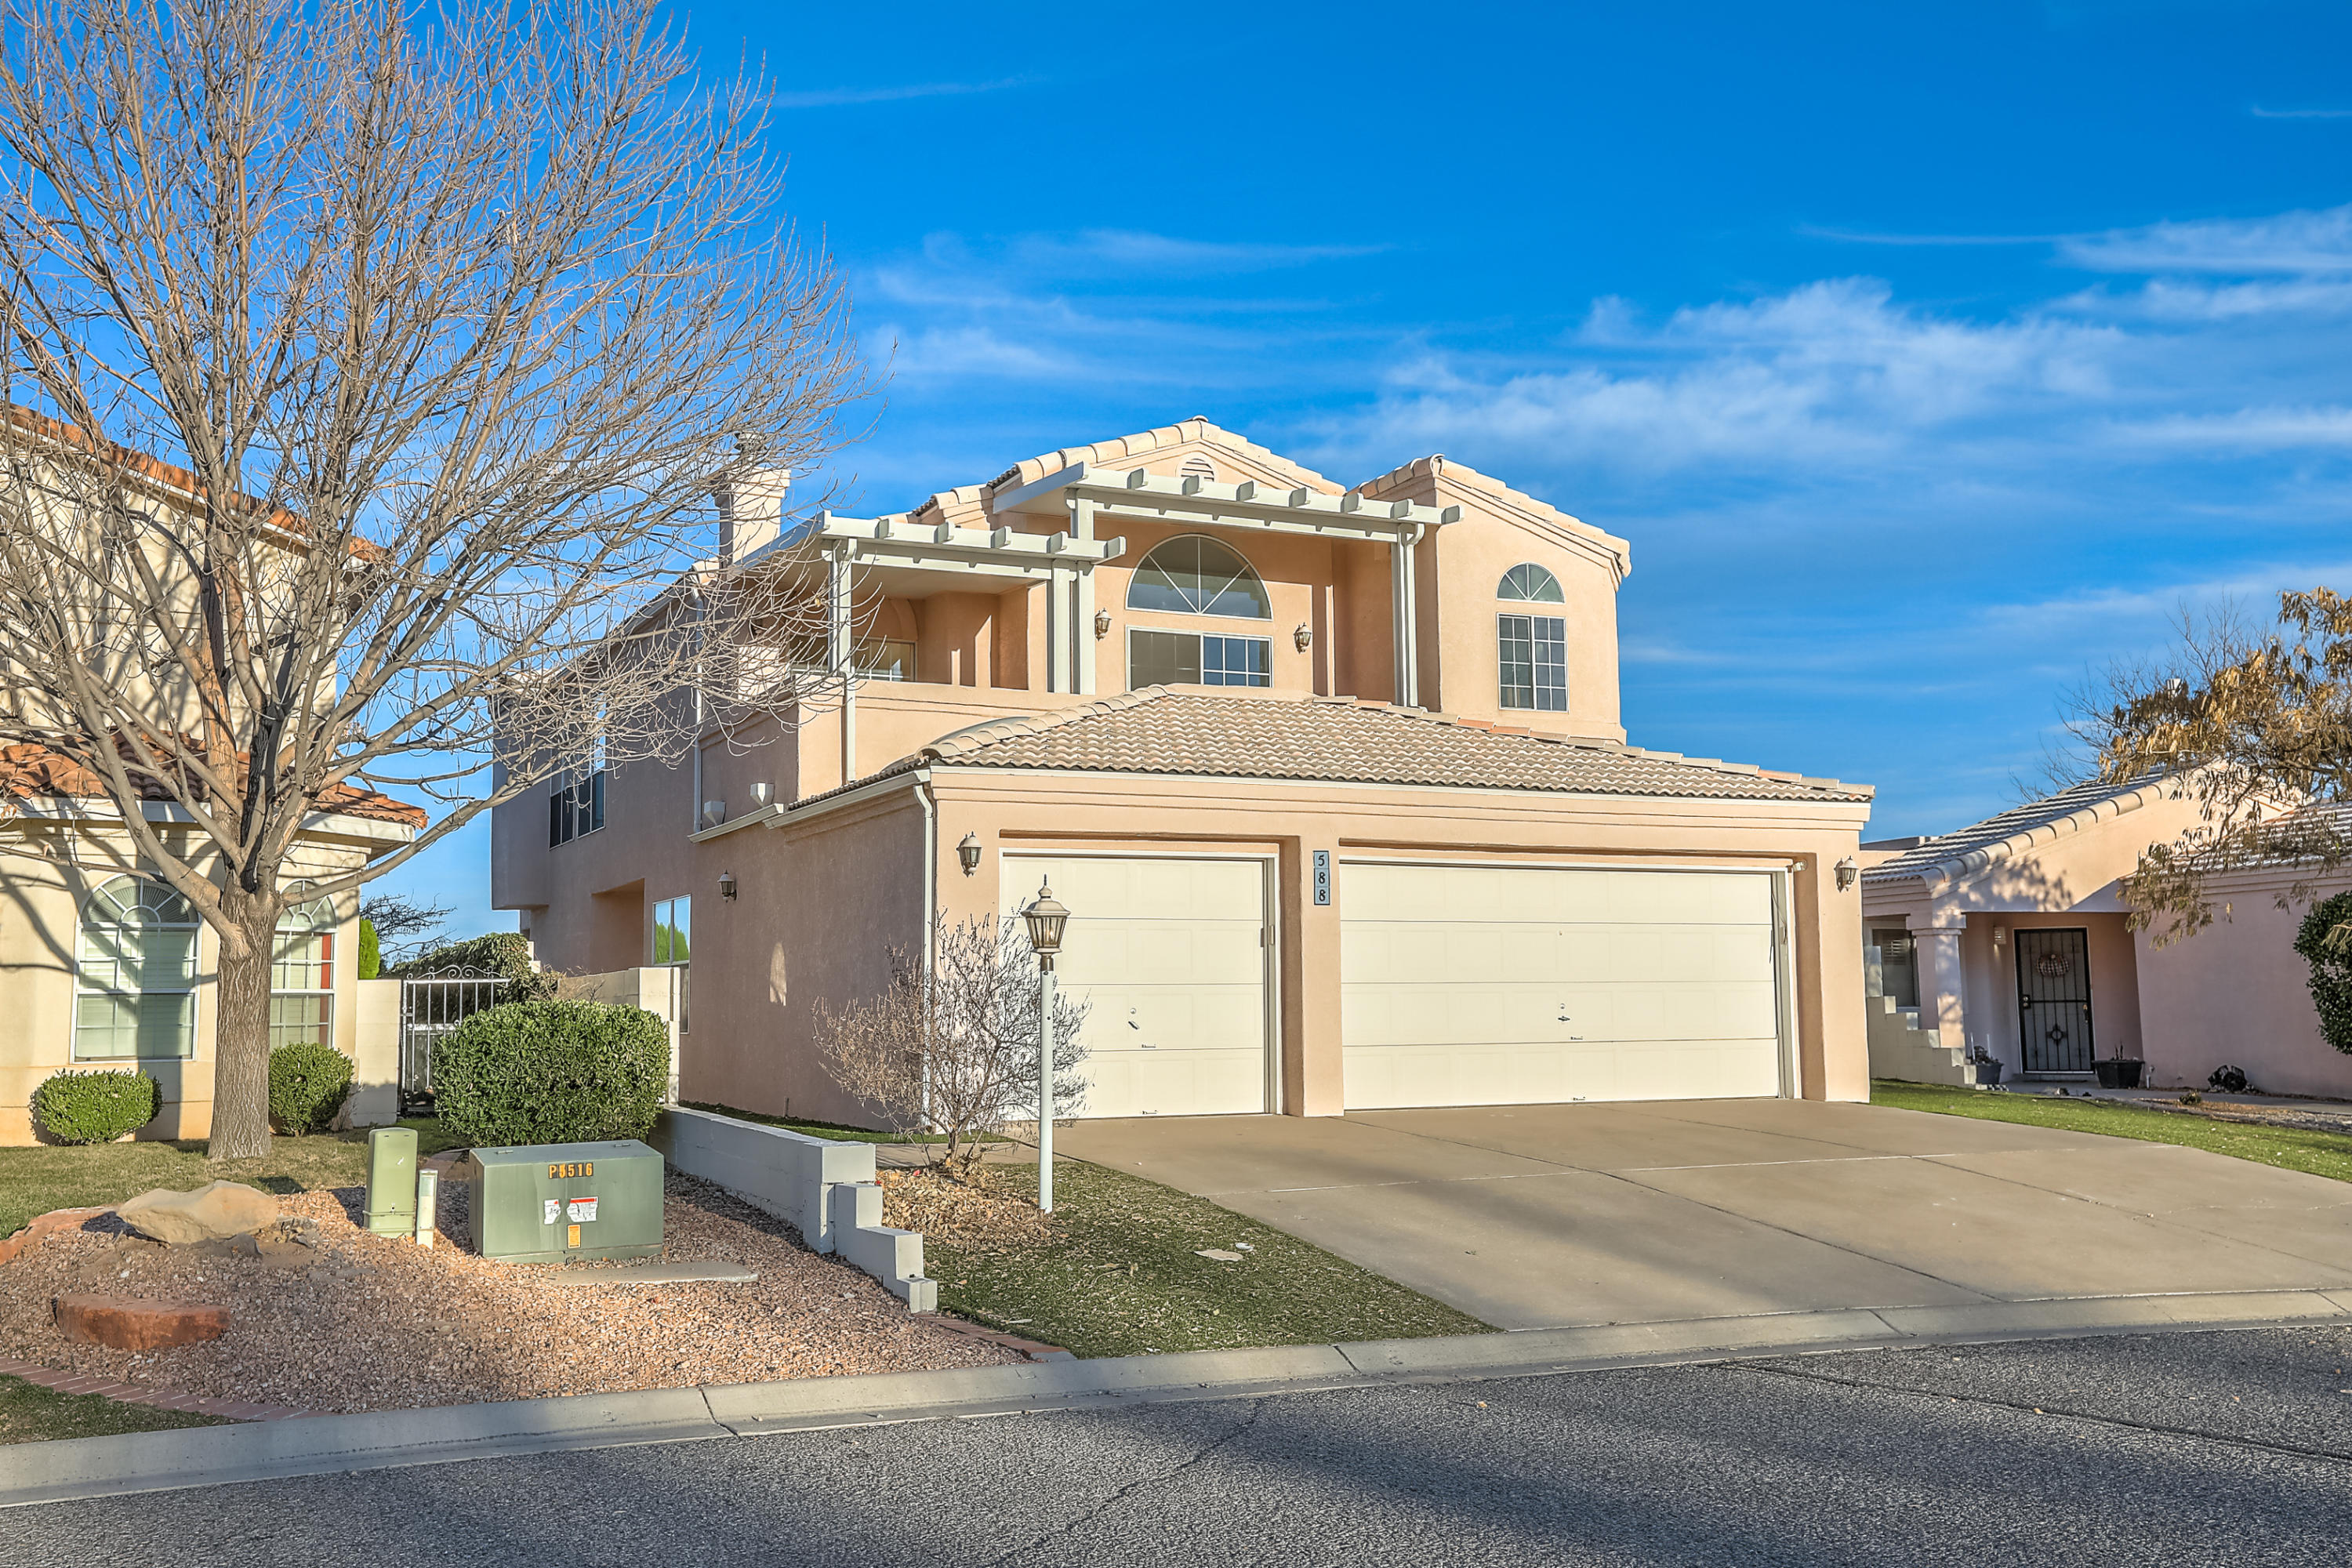 WELCOME HOME to this beautiful, light, bright property featuring a 3 car garage, multi living areas for options galore (home office, schooling, etc)  and beautiful mountain views. New kitchen oven, microwave and cooktop! Refrigerated air is a wonderful bonus. Enjoy the beautiful mountain views from the lovely outdoor patio and upstairs deck. A custom fountain, large, spacious yard and exterior living environment create extra space for all! Large owner's retreat and spacious master bath is perfect for relaxation at the end of the day. Plan to visit this one today.